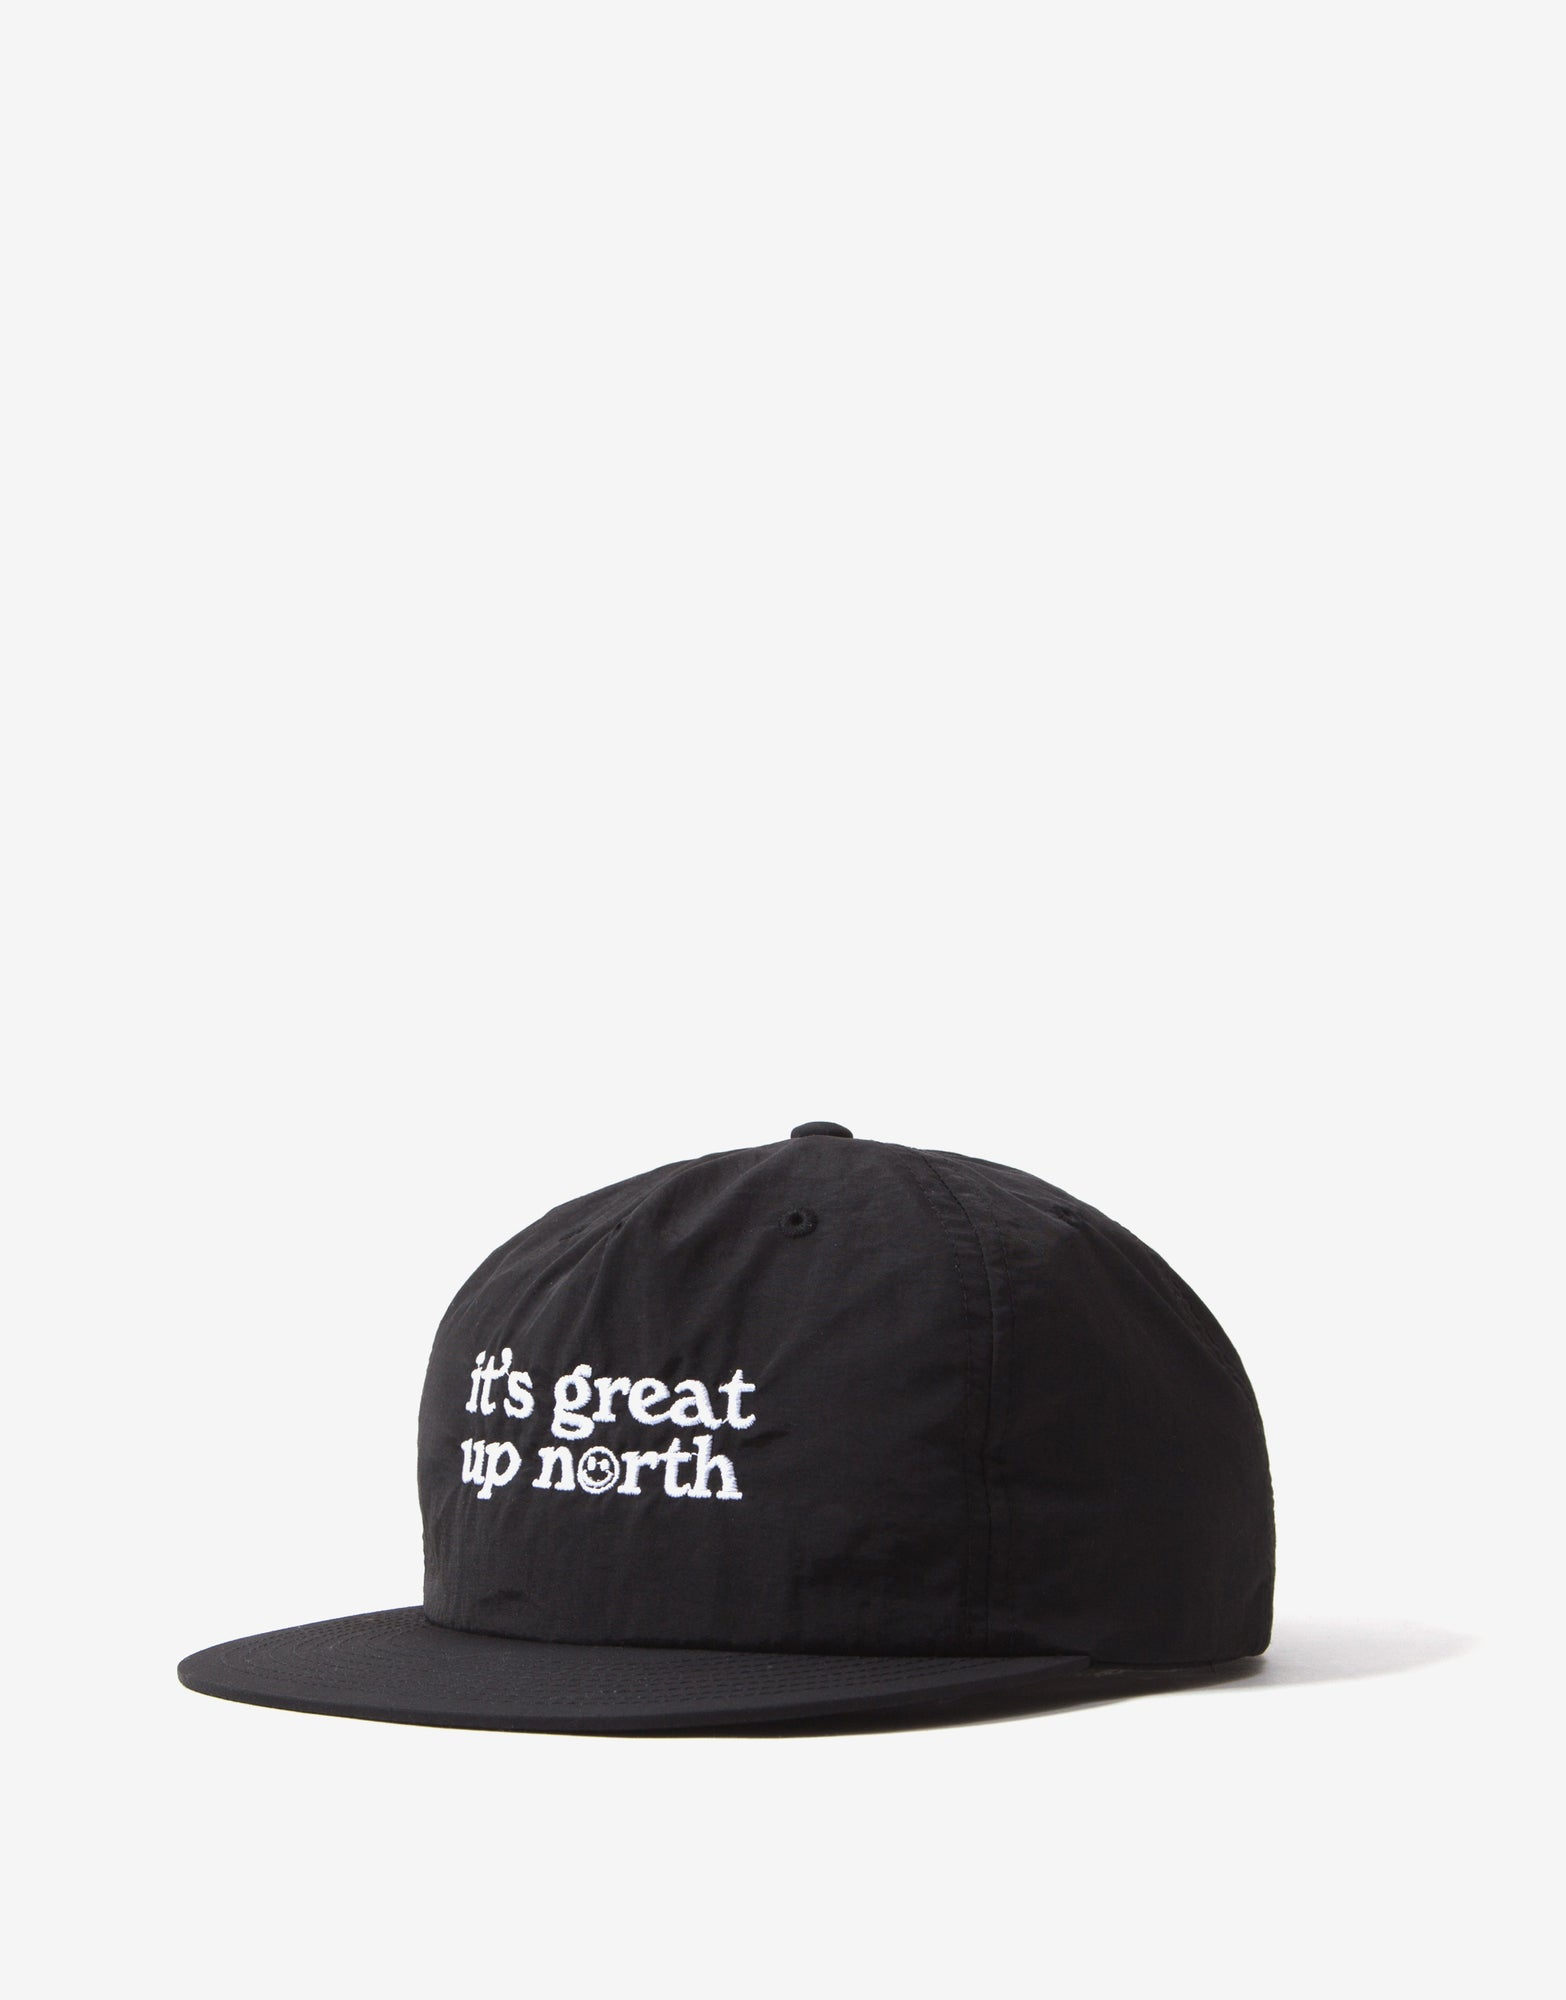 It's Great Up North Snapback Cap - Black